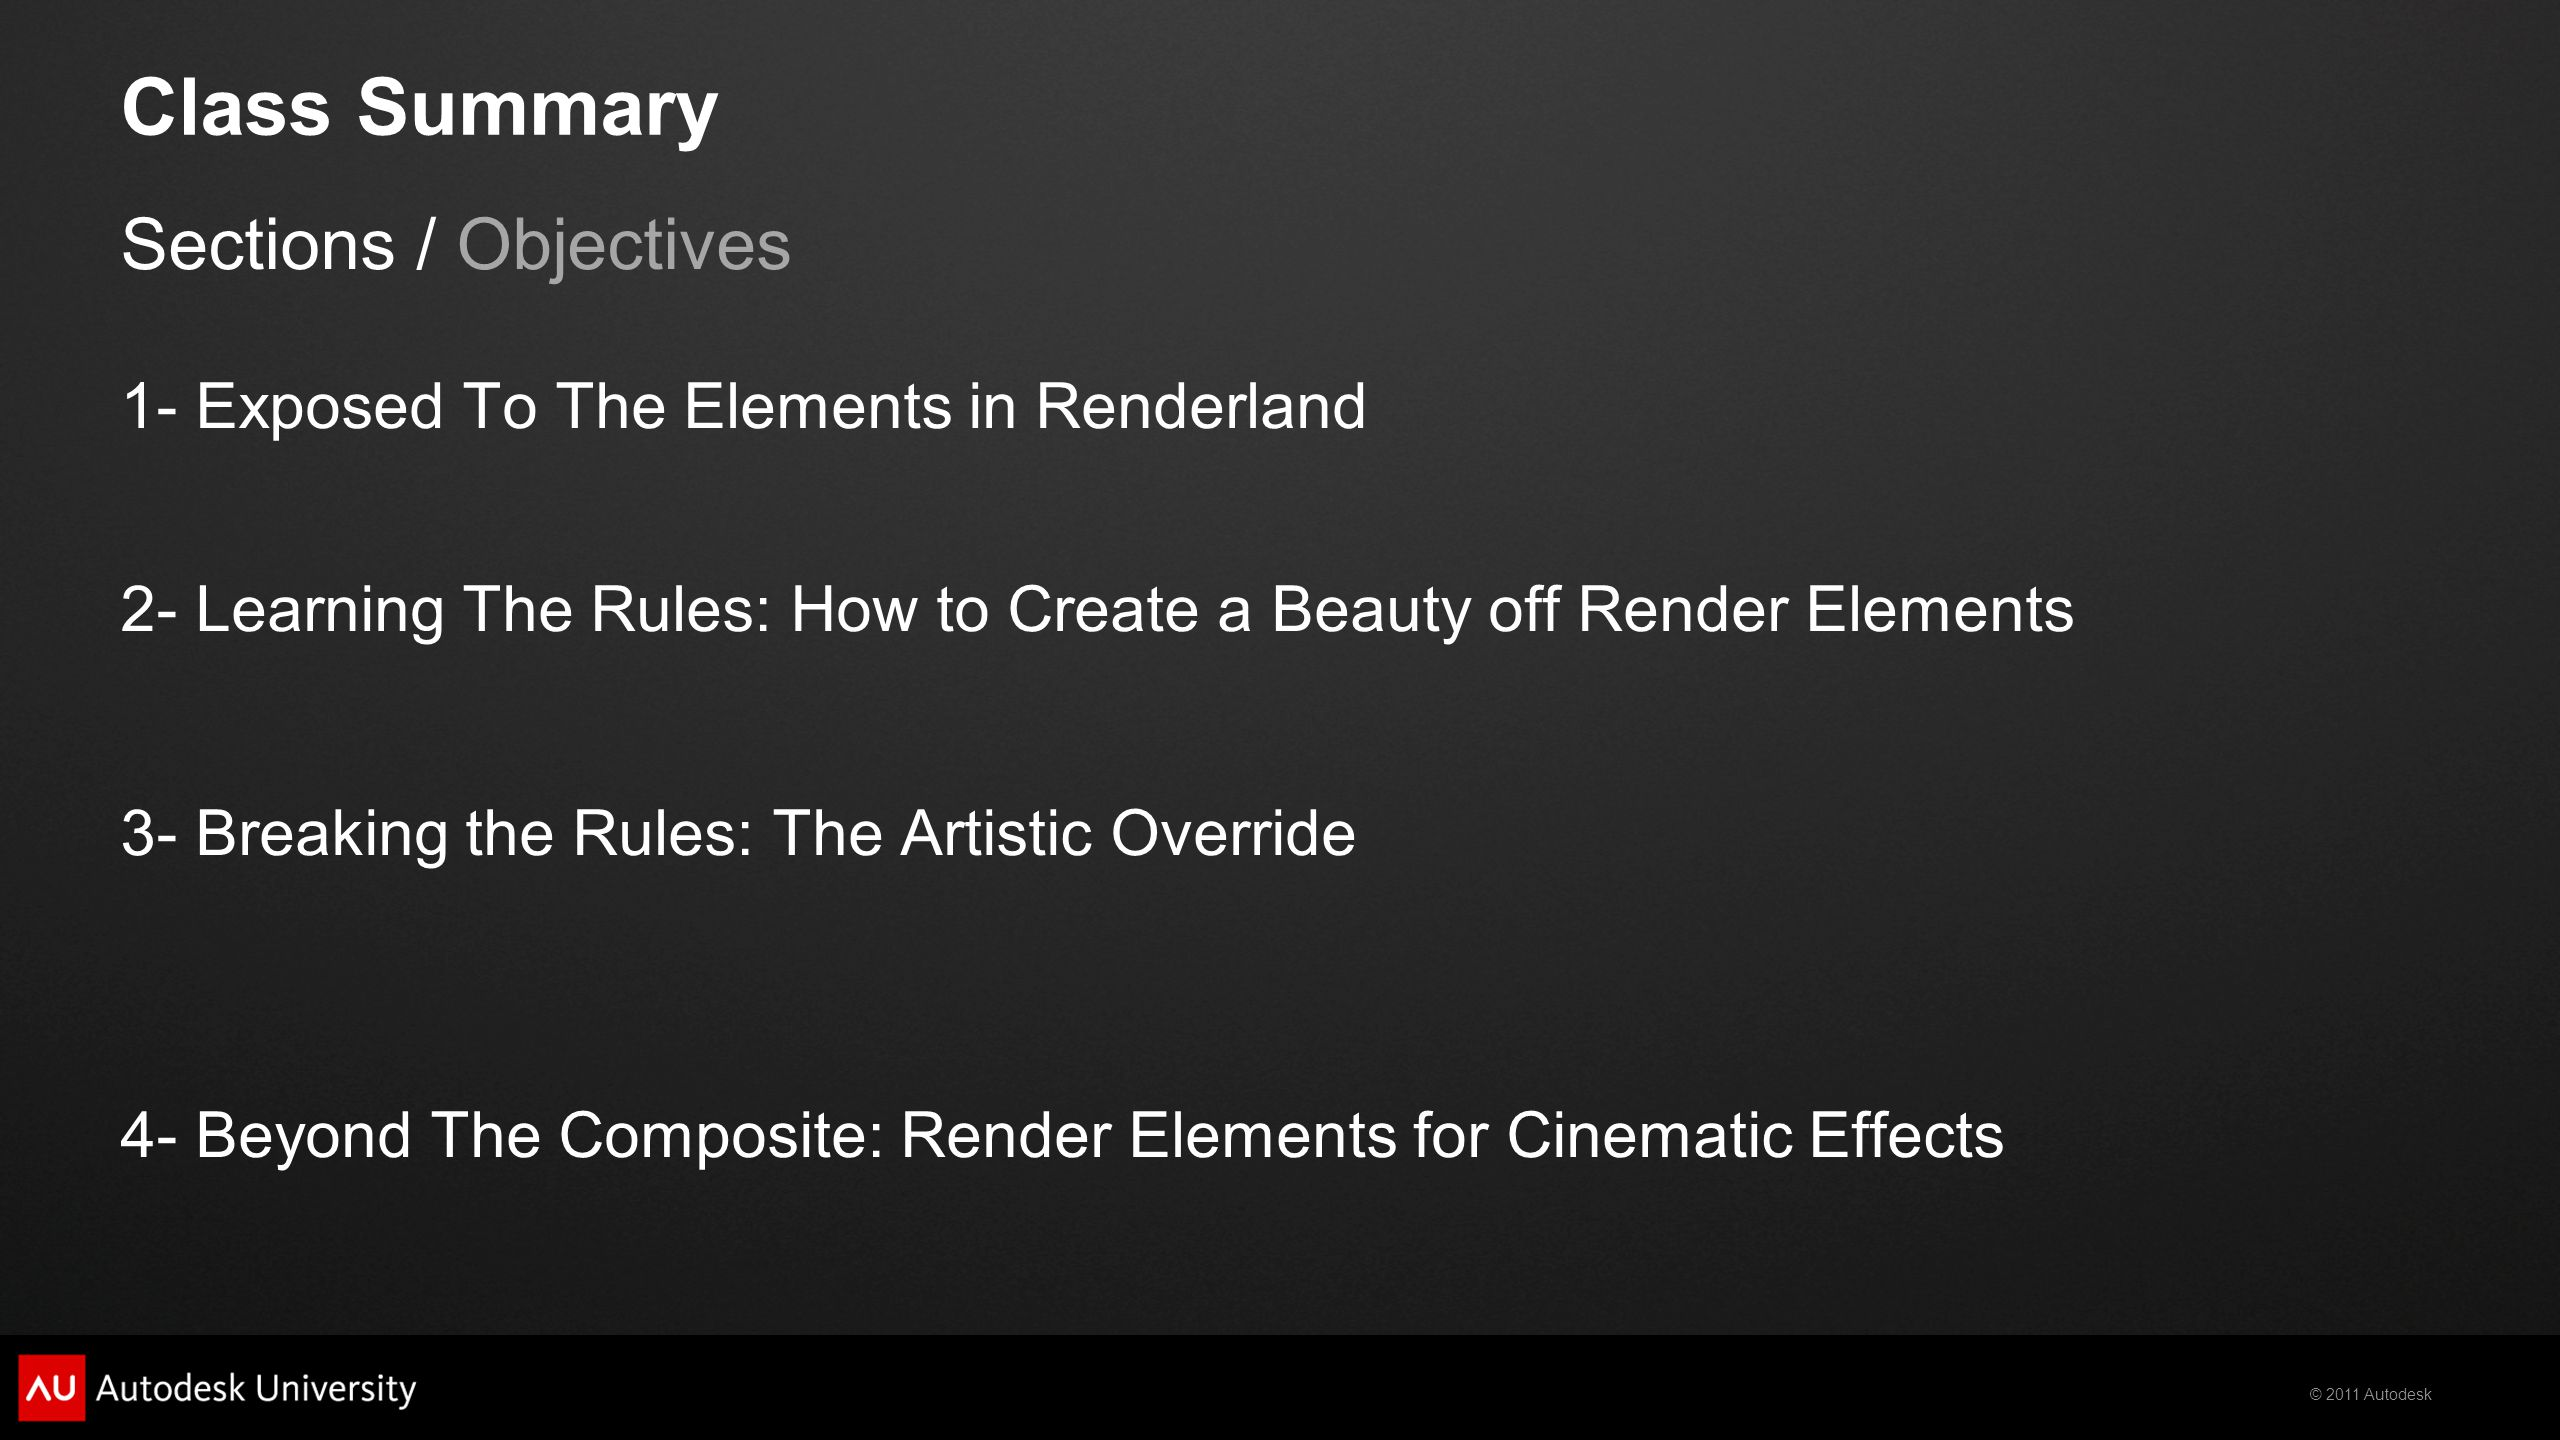 © 2011 Autodesk Class Summary Sections / Objectives 1- Exposed To The Elements in Renderland 2- Learning The Rules: How to Create a Beauty off Render Elements 3- Breaking the Rules: The Artistic Override 4- Beyond The Composite: Render Elements for Cinematic Effects